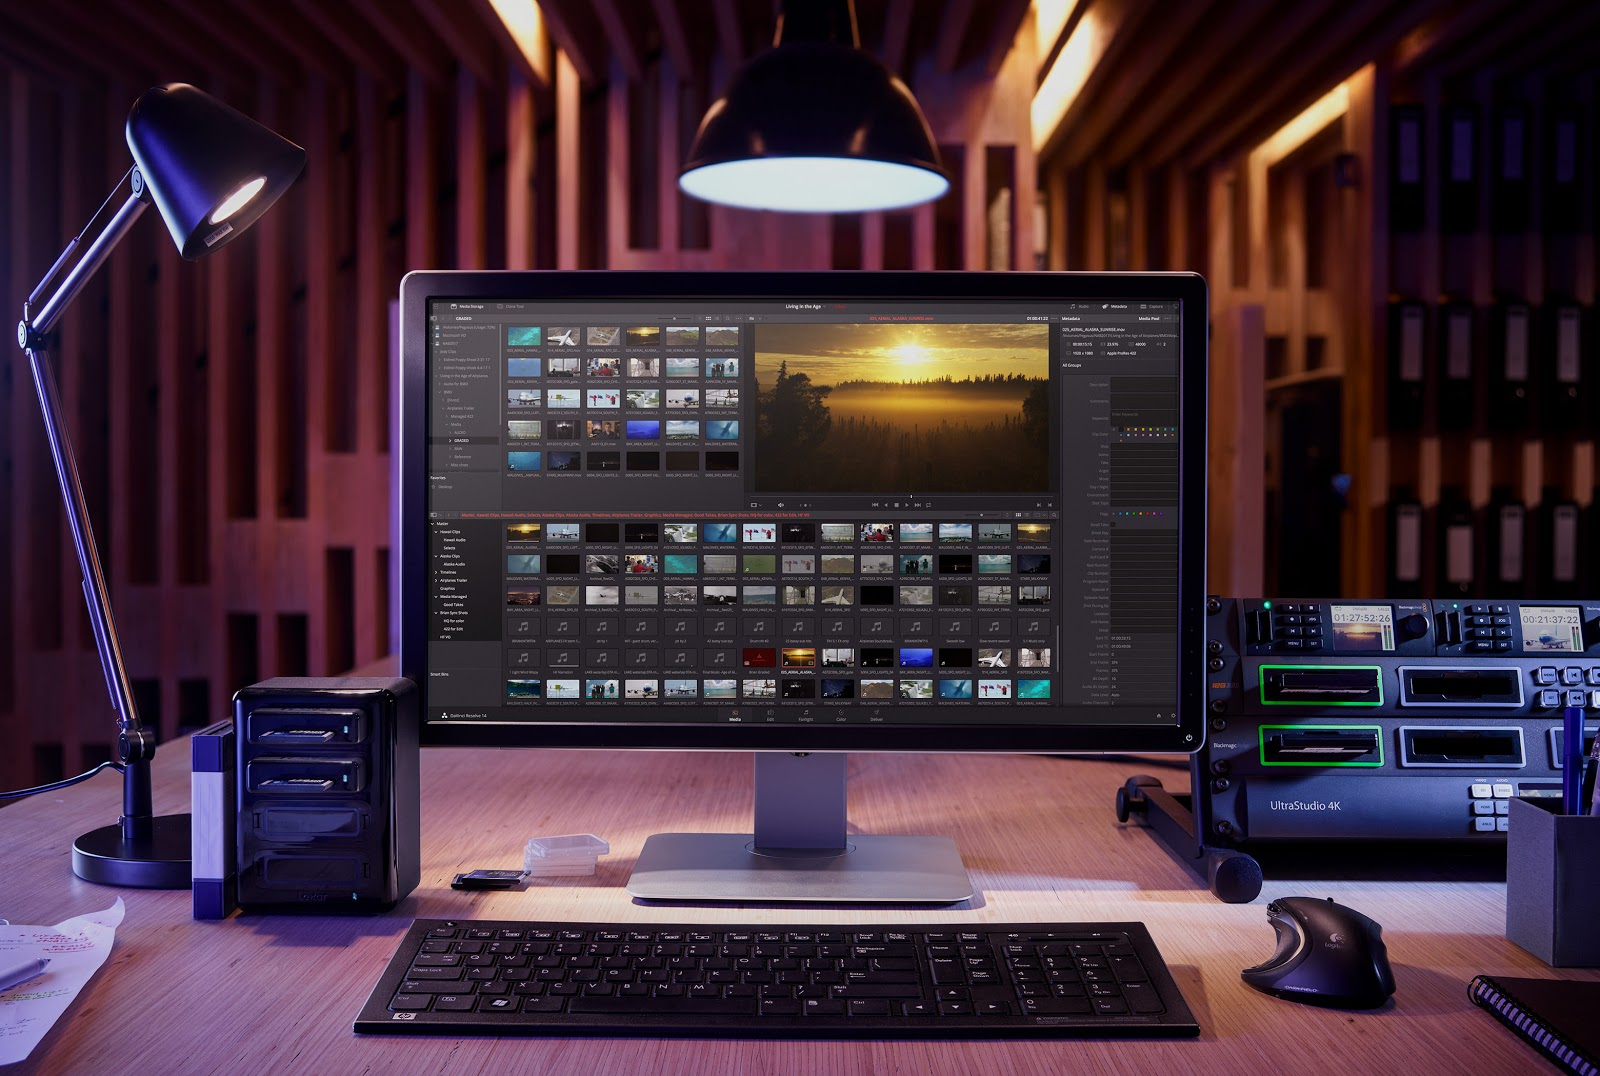 Bodacious Why Davinci Resolve Is Ultimate Tool To Sync Clips Why Davinci Resolve Is Ultimate Tool To Sync Clips Davinci Resolve Console Price Davinci Resolve Price Australia dpreview Davinci Resolve Price